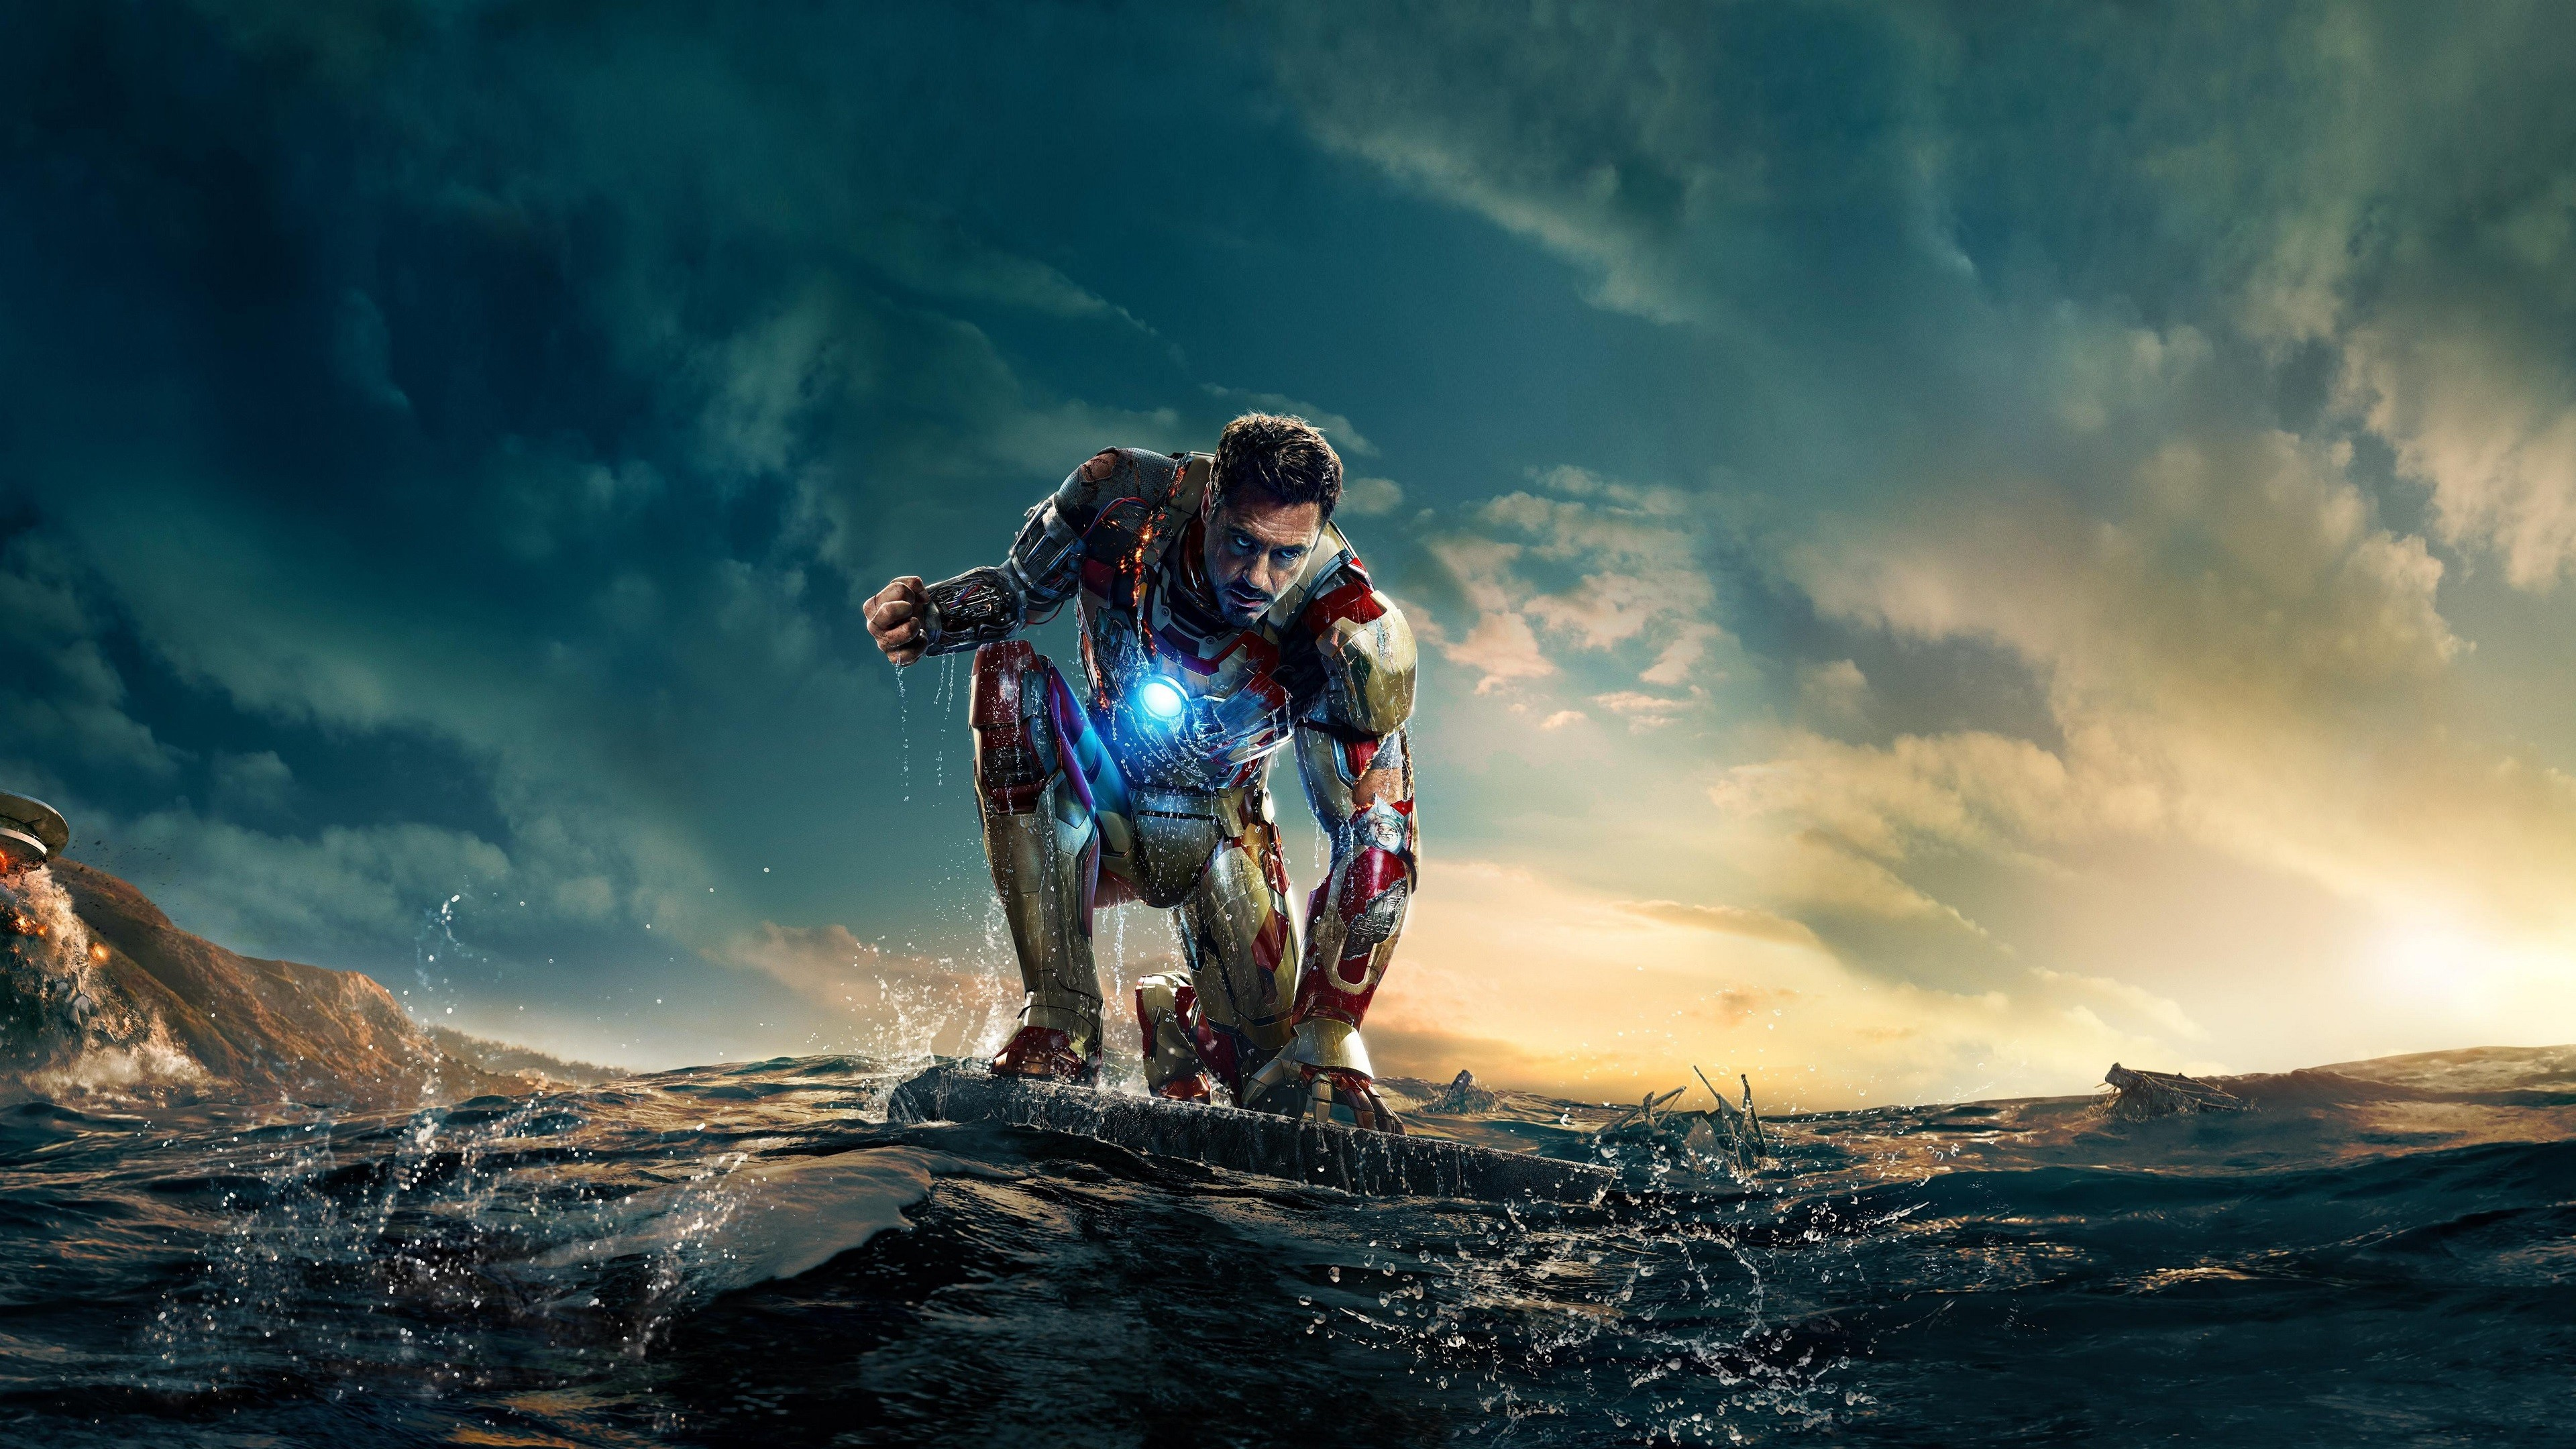 Robert Downey Jr as Iron Man 4K Wallpapers 3840x2160